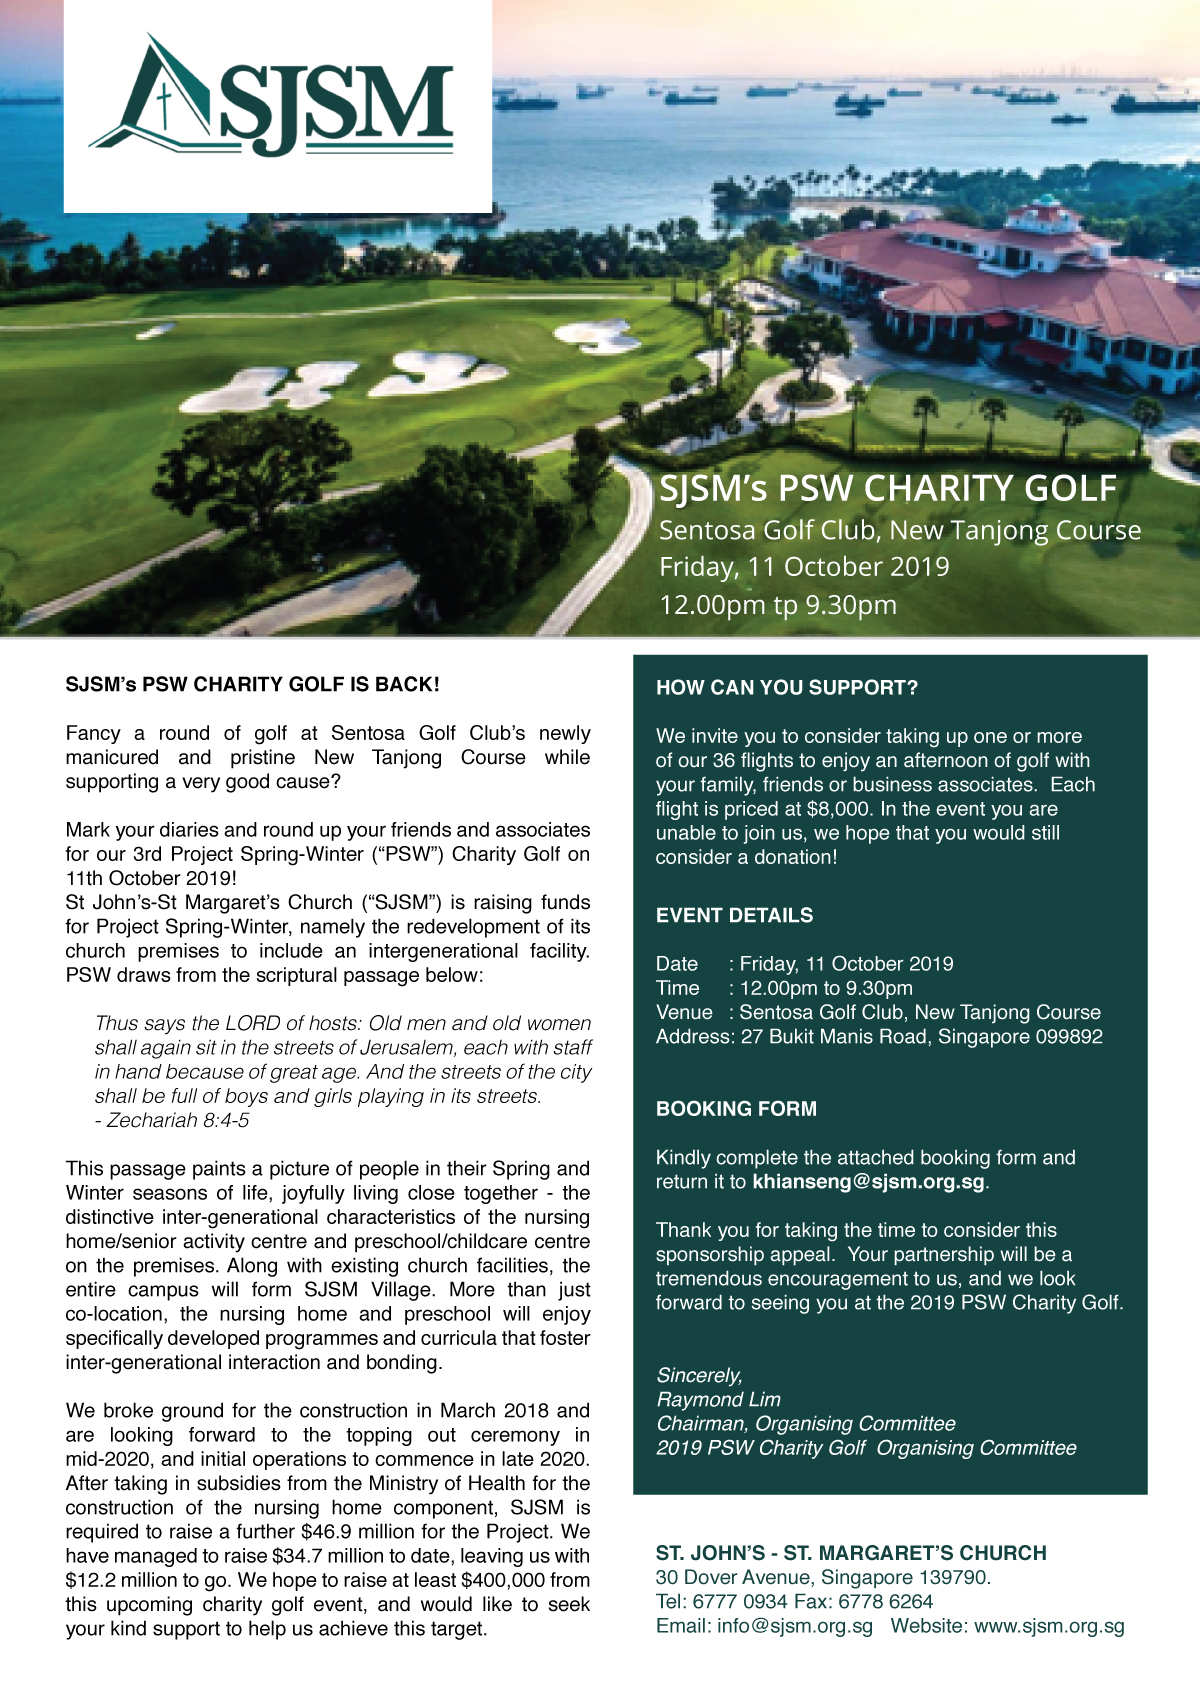 Champions Golf – Public Golf Course in Singapore